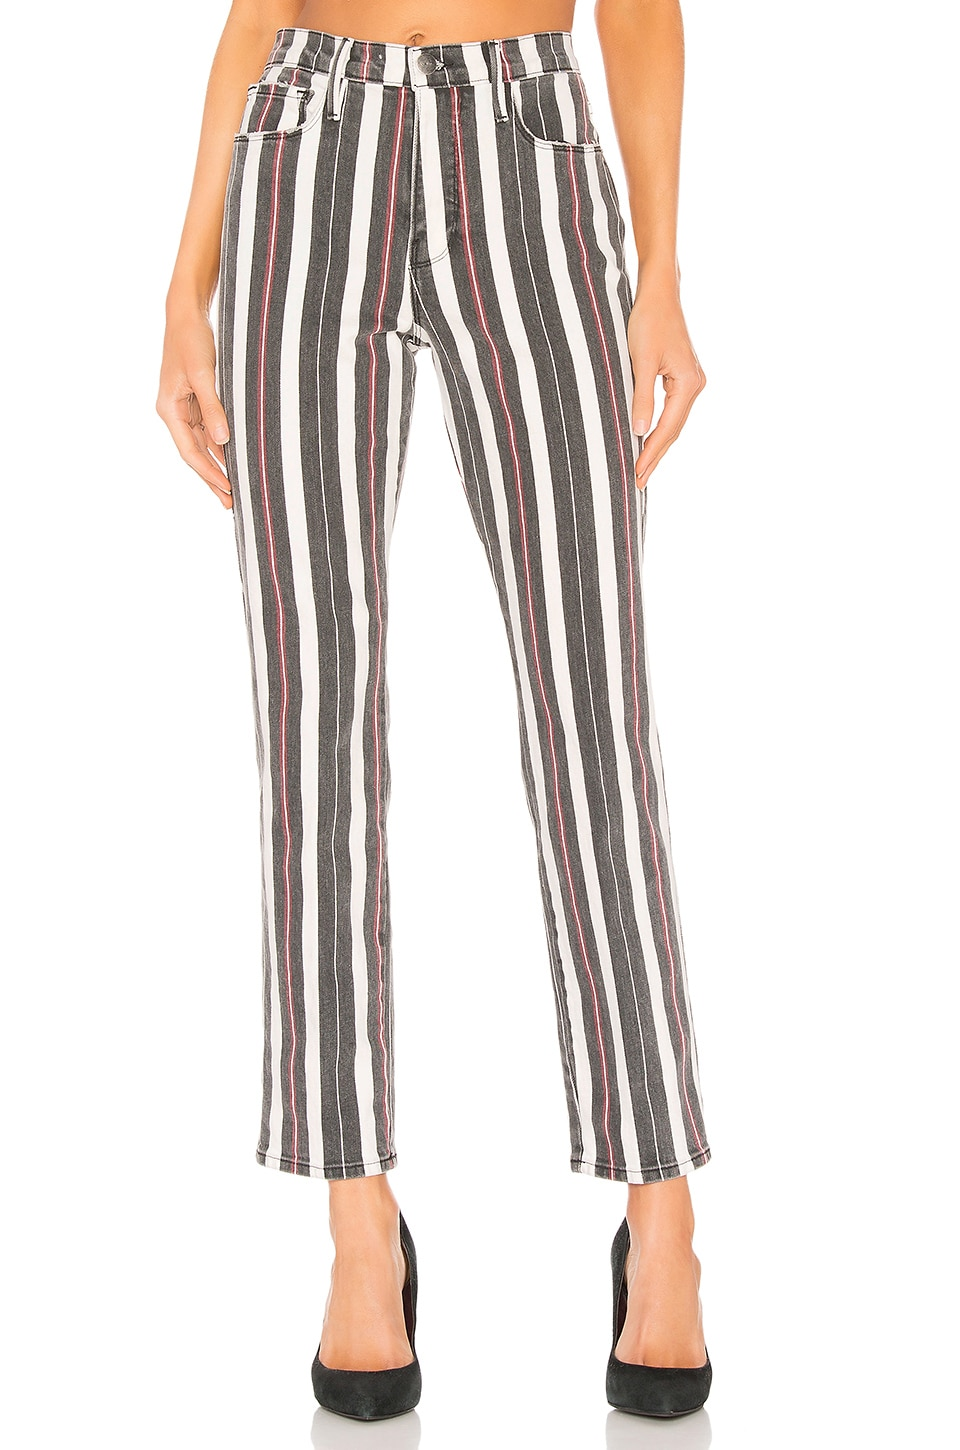 FRAME Le Sylvie Band Stripe in Band Stripe